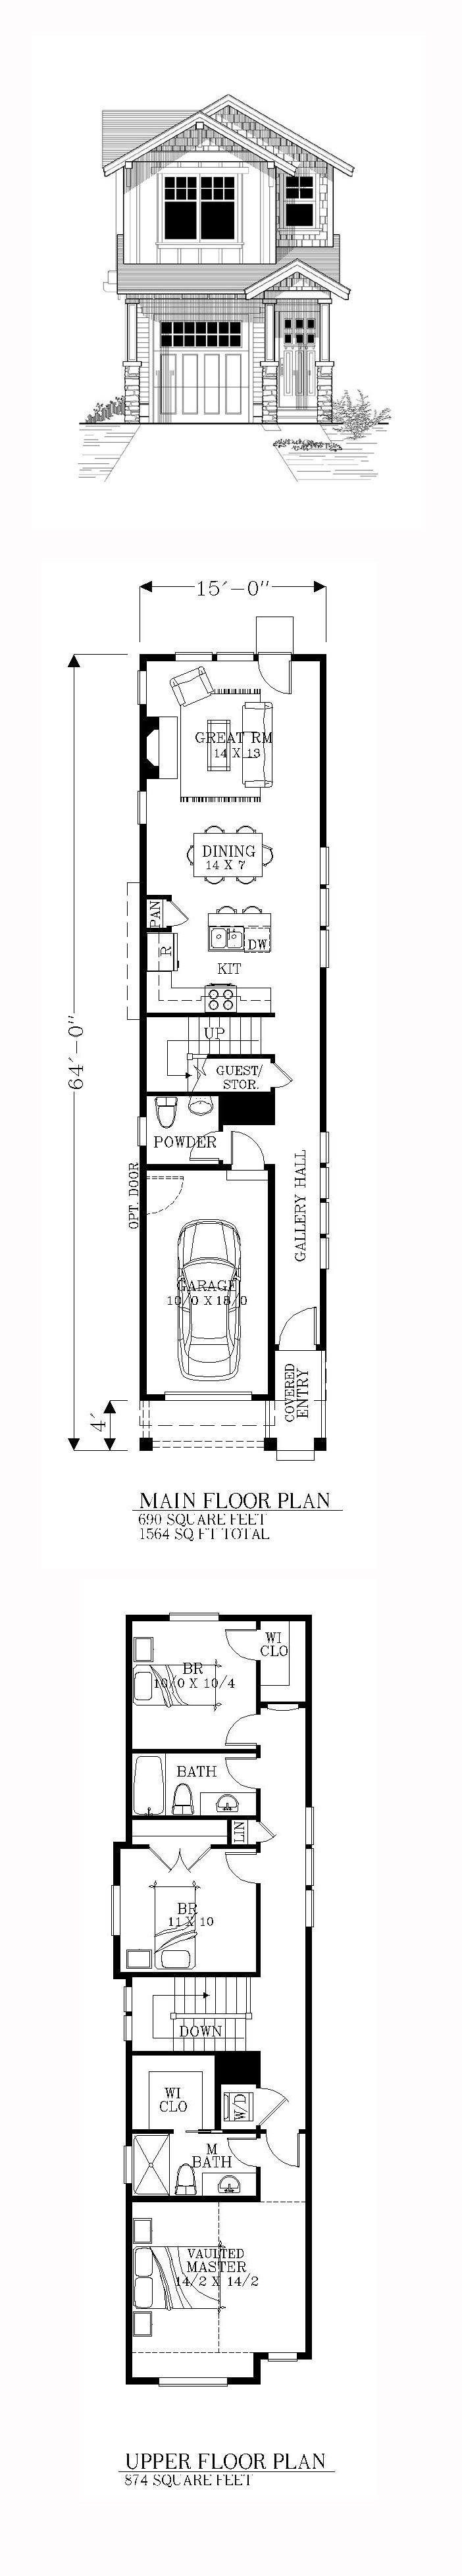 The Perfect Paint Schemes for House Exterior   Narrow lot ... on simple house plans, luxury house plans, bungalow house plans, open small house plans, energy efficient house plans, 25' wide house plans, southwest house plans, mediterranean house plans, townhouse house plans, charleston house plans, country house plans, cottage house plans, european house plans, craftsman house plans, old new orleans house plans, colonial house plans, seaside house plans, traditional house plans, one story house plans,